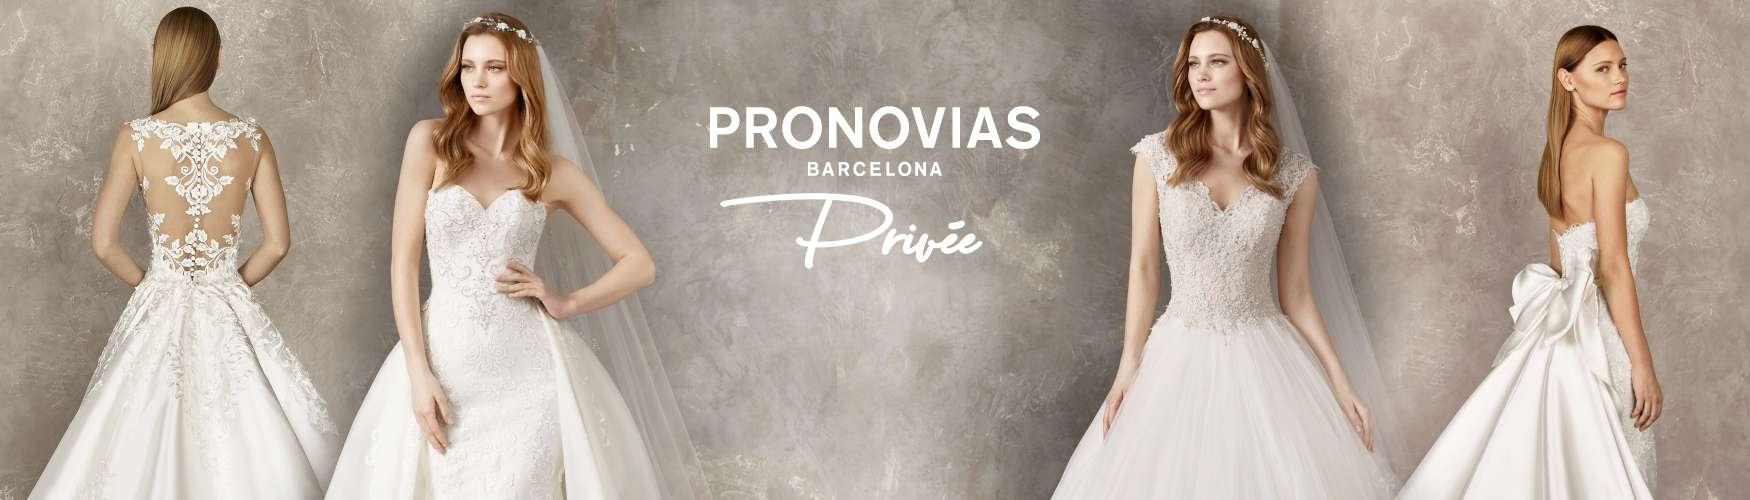 Pronovias Privée 2019